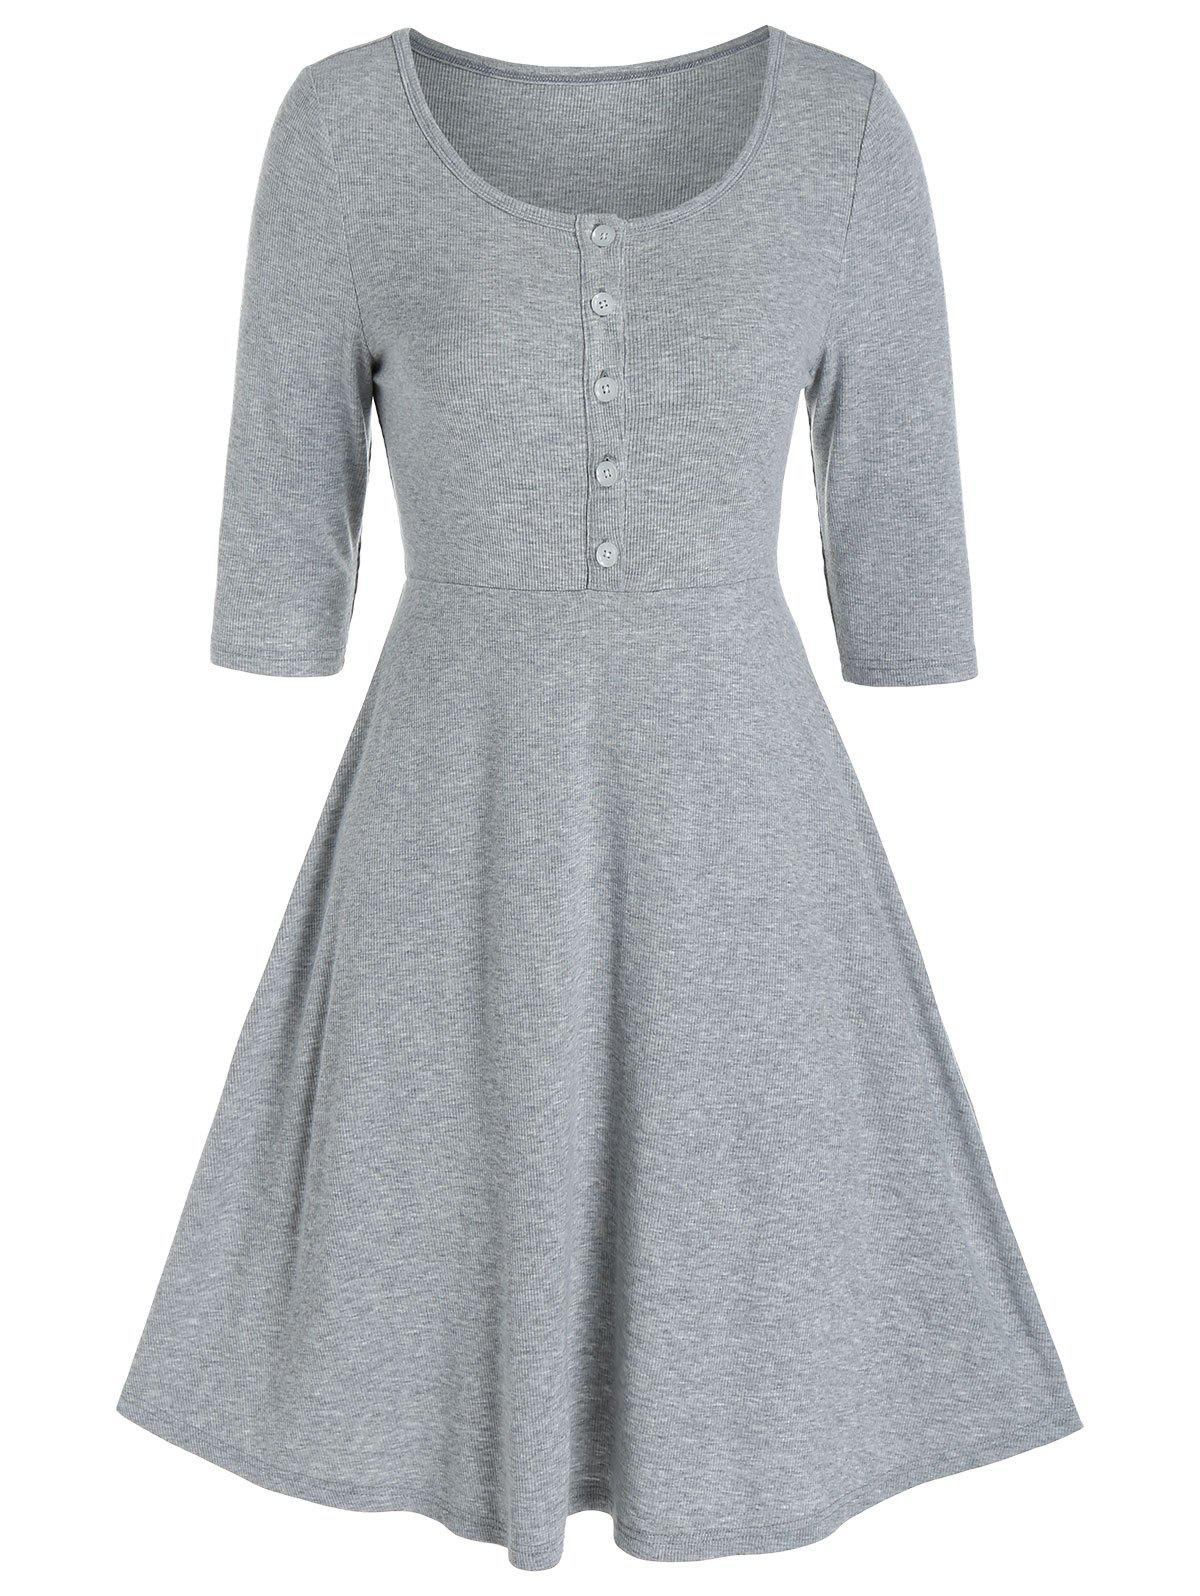 Half Button High Waist Knitted A Line Dress - LIGHT GRAY 3XL